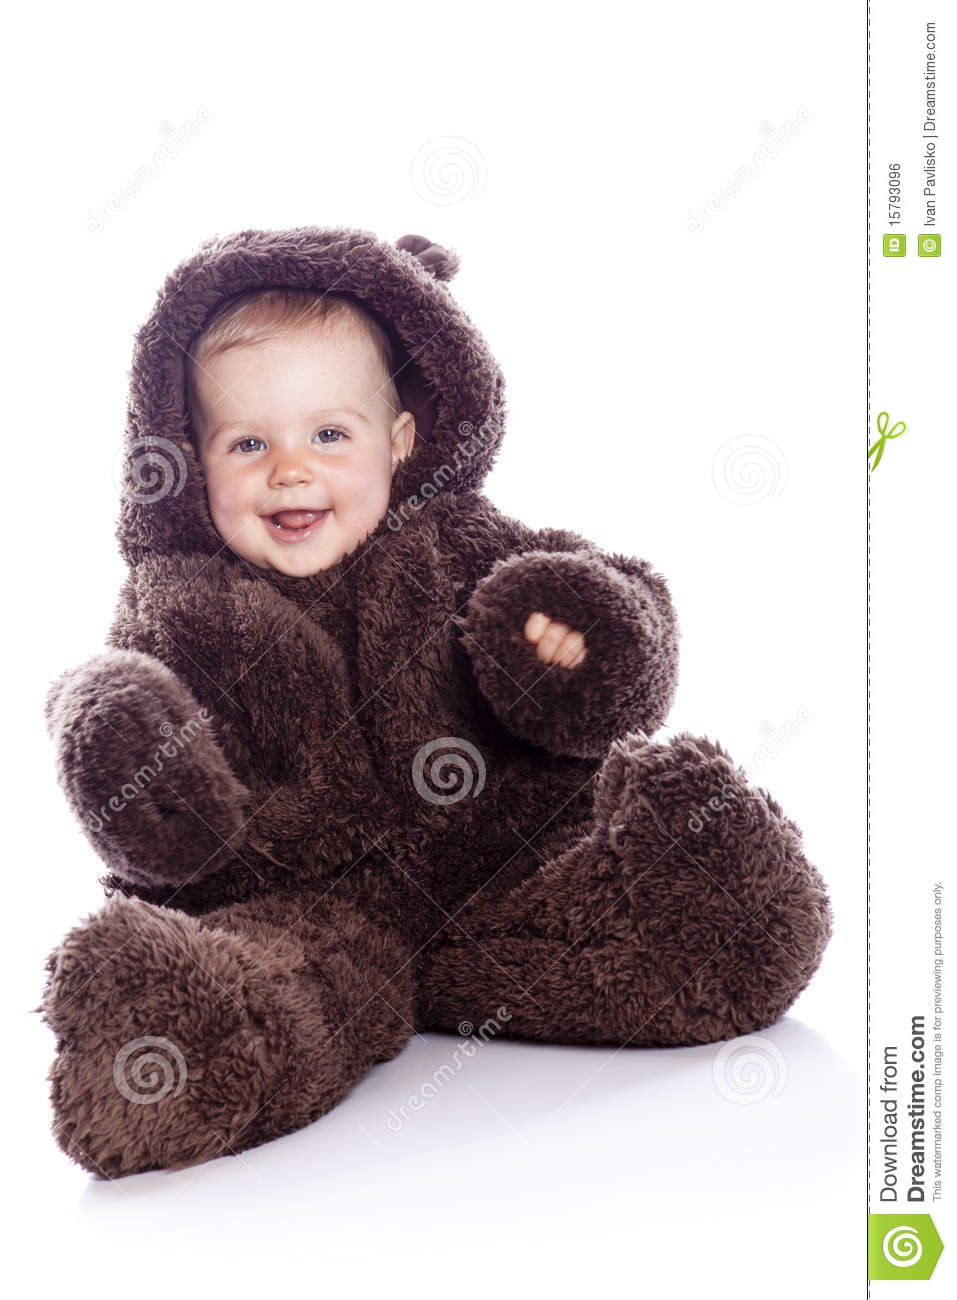 Download Baby Child In Teddy-bear Costume Stock Photo - Image of teddy smiling  sc 1 st  Dreamstime.com & Baby Child In Teddy-bear Costume Stock Photo - Image of teddy ...